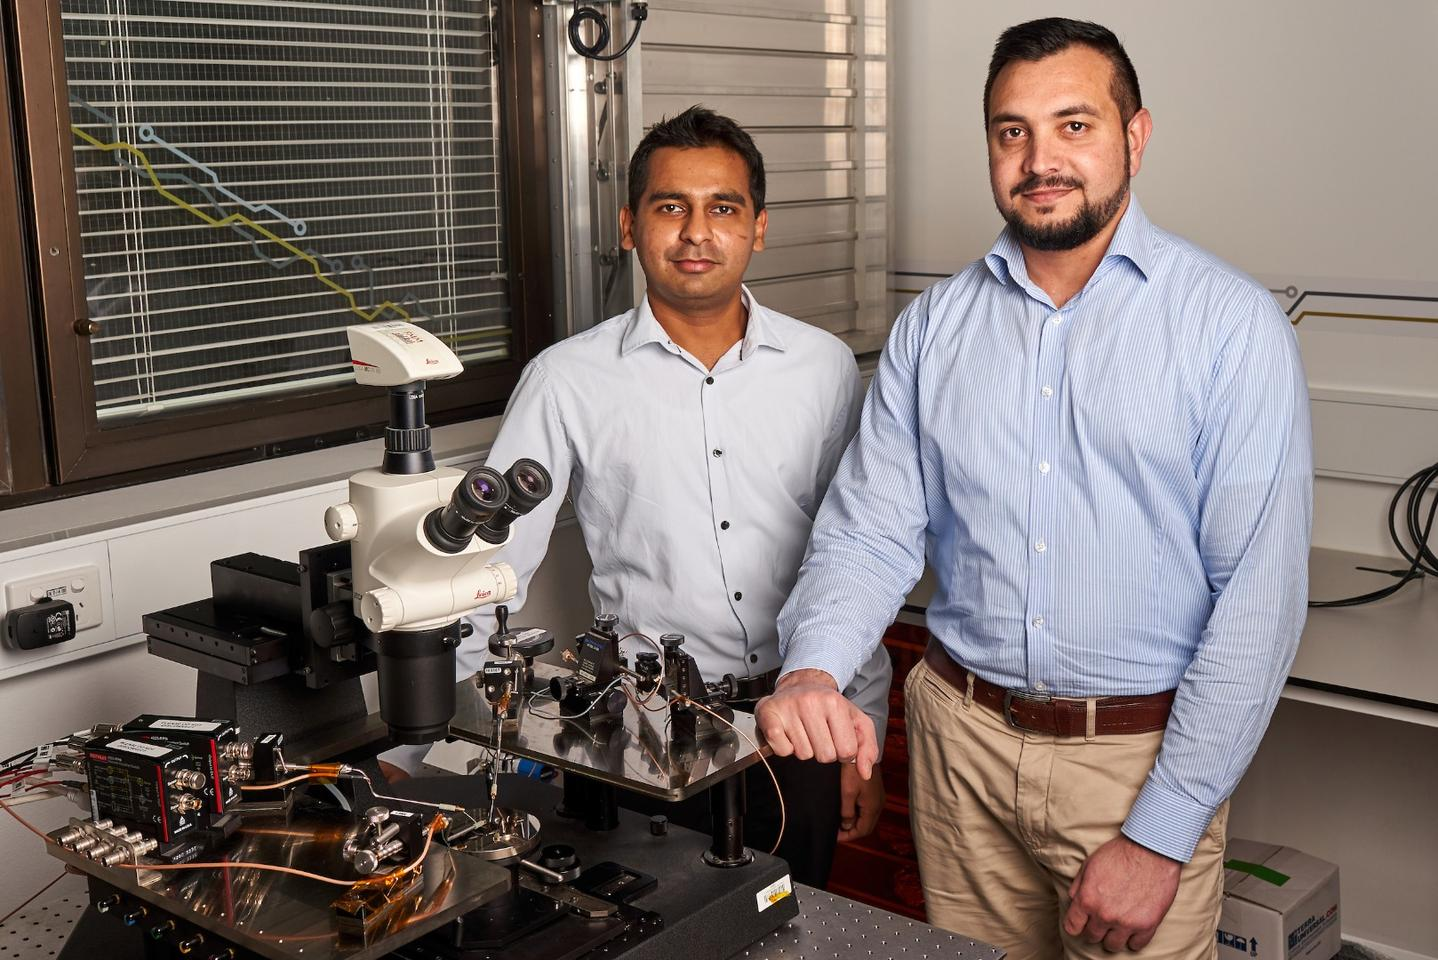 Researchers on the study Sumeet Walia (left) andTaimur Ahmed (right)